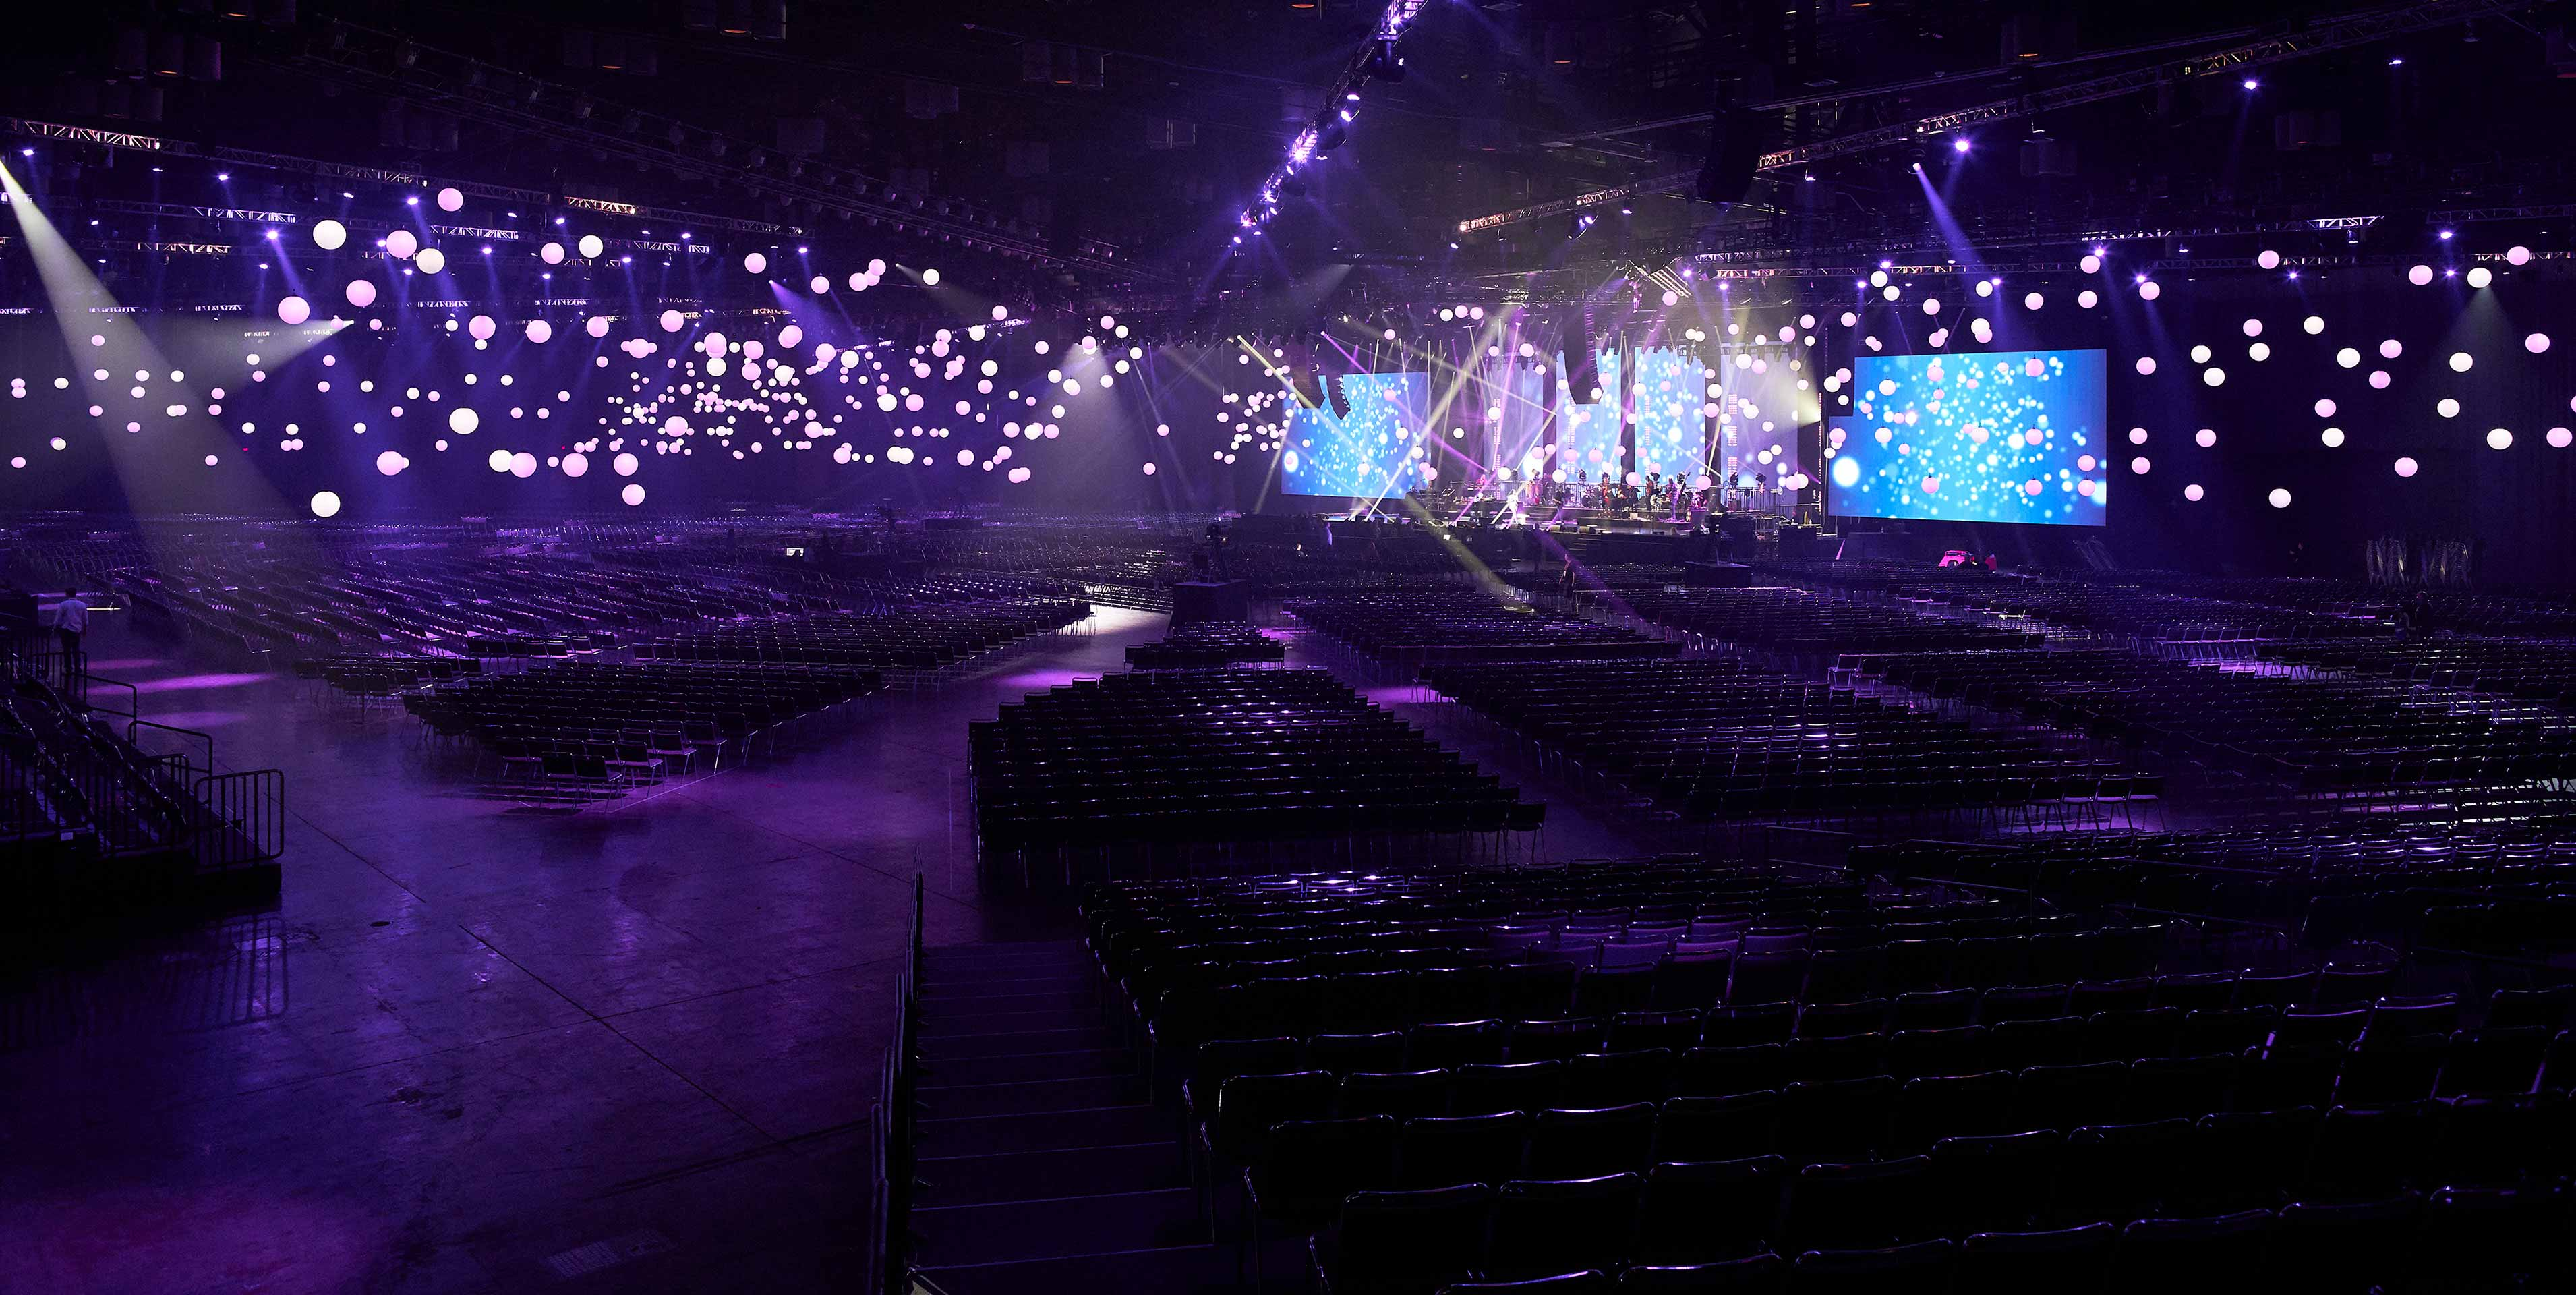 The magnificent set for the closing concert of McDonald's 2018 Worldwide Convention